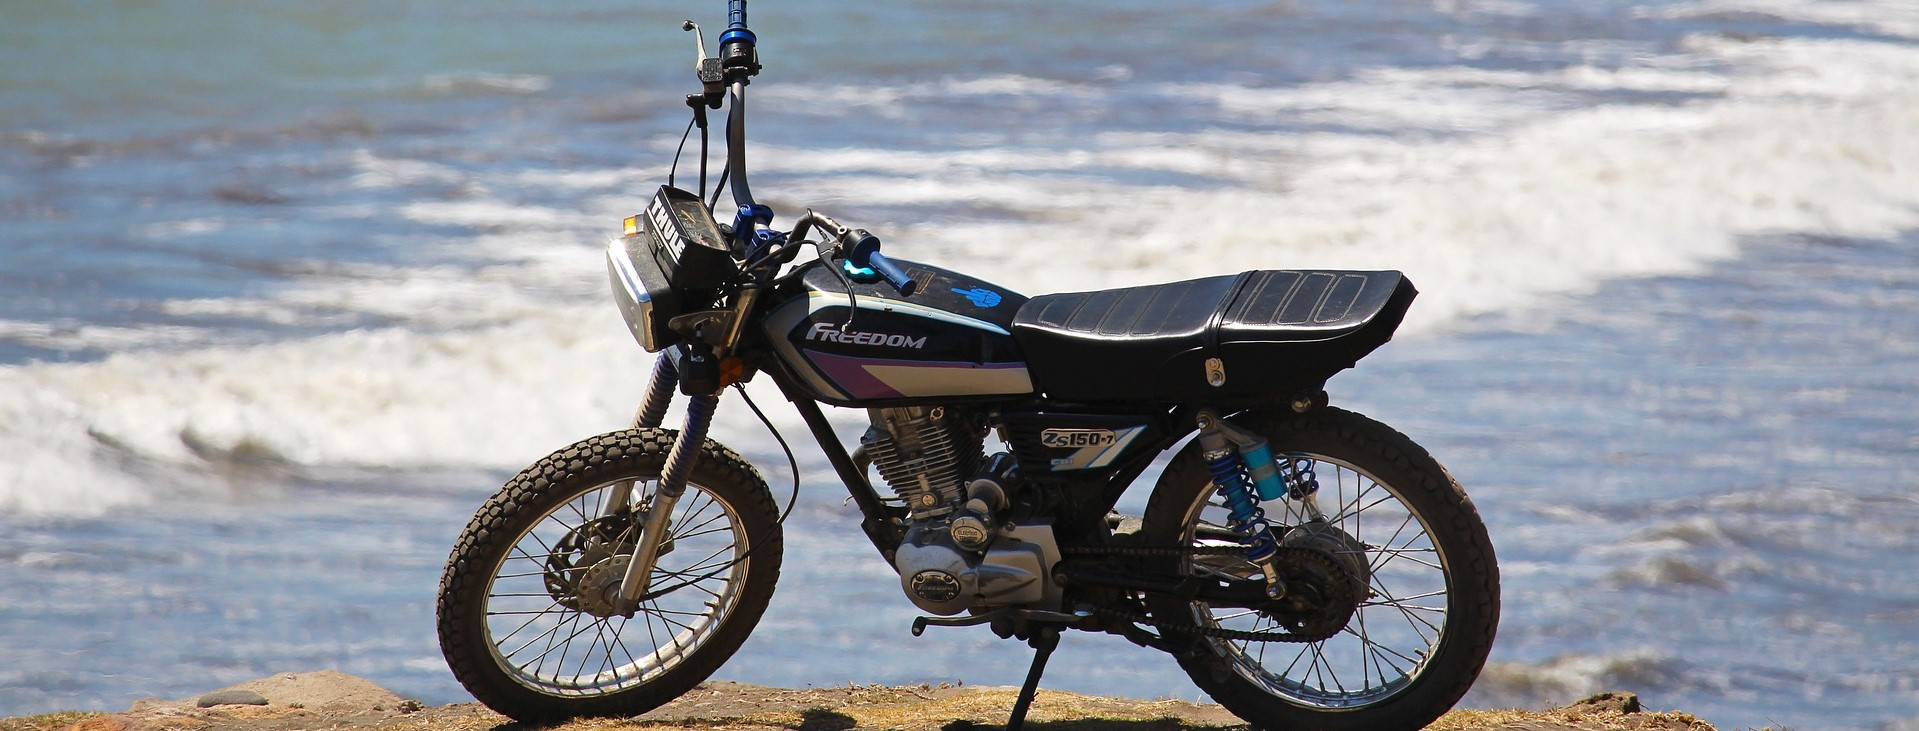 Motorcycle on a Beach in Maryland - CarDonations4Cancer.org